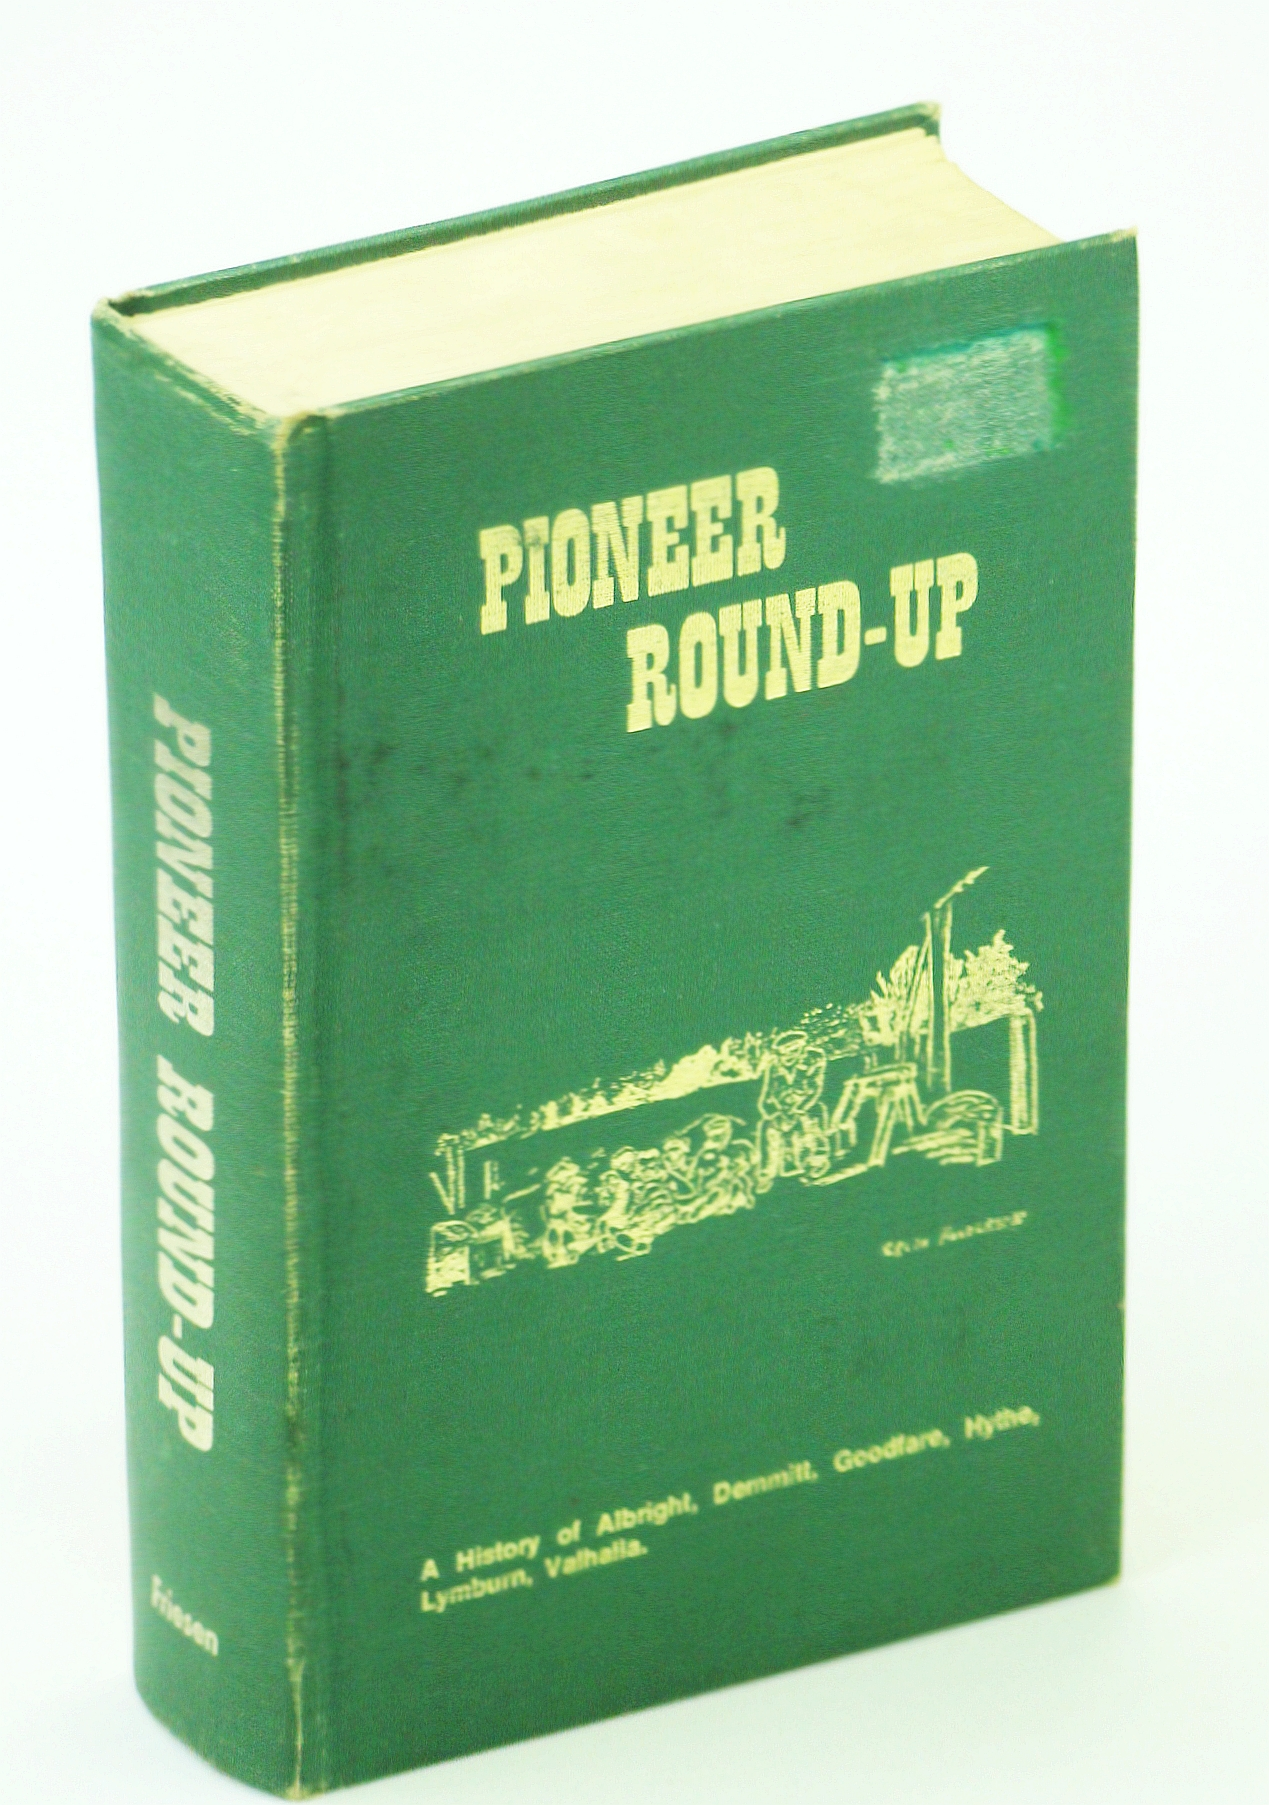 Image for Pioneer round-up: A history of Albright, Demmitt, Goodfare, Hythe, Lymburn, Valhalla